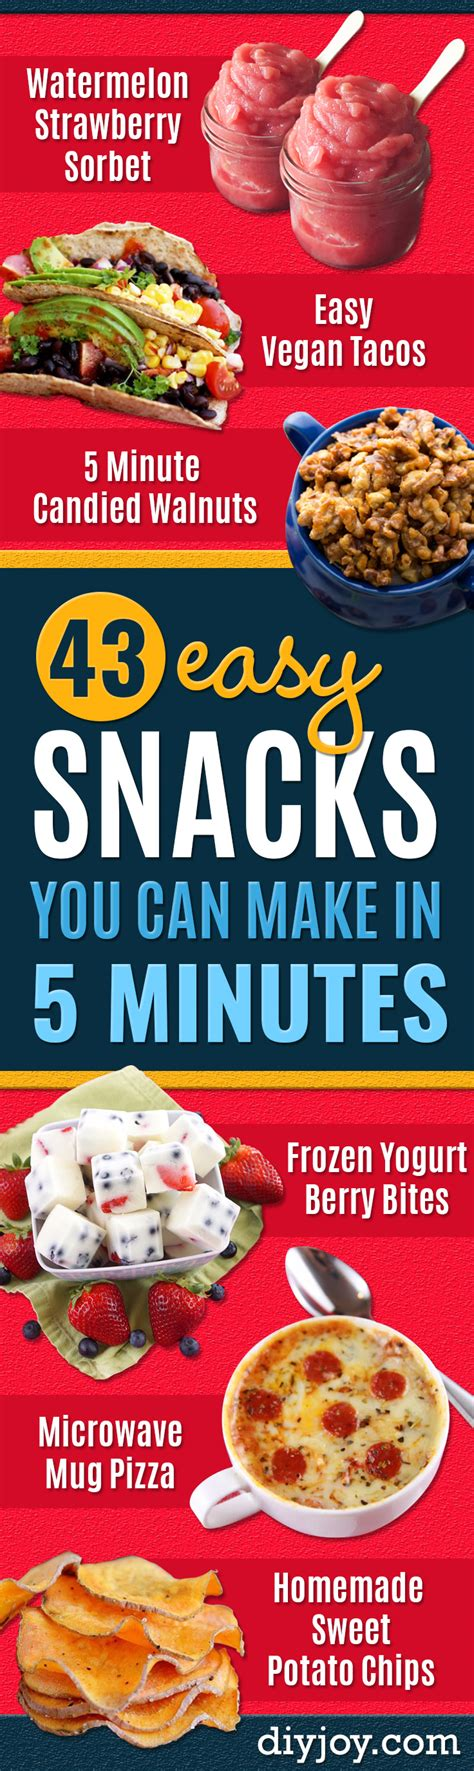 5 minute recipes for snacks